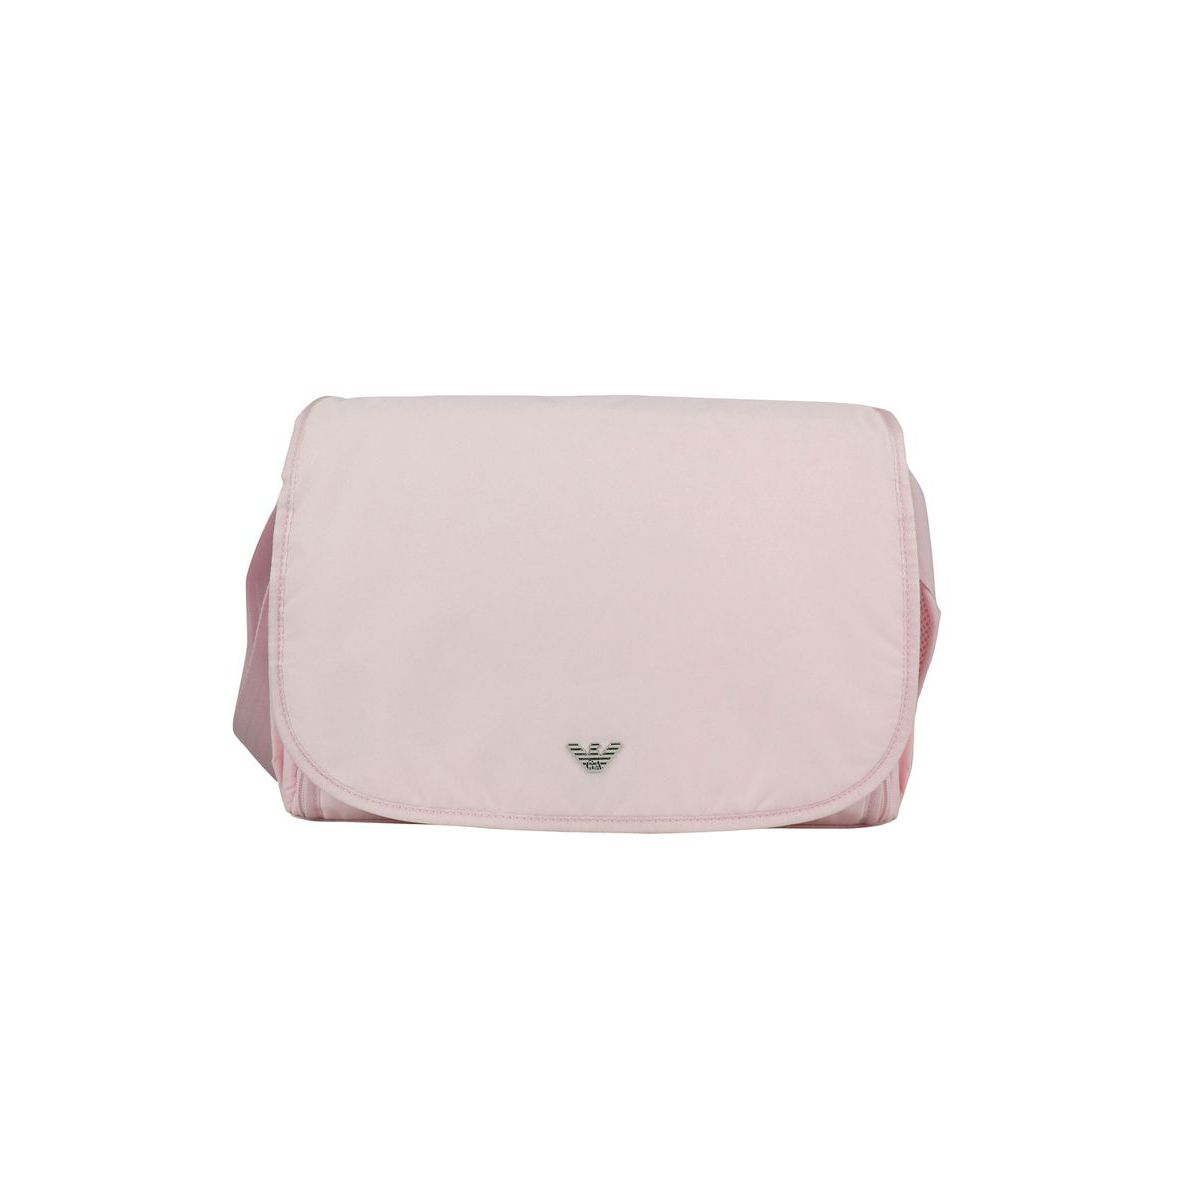 Newborn bag with accessories Pink Emporio Armani